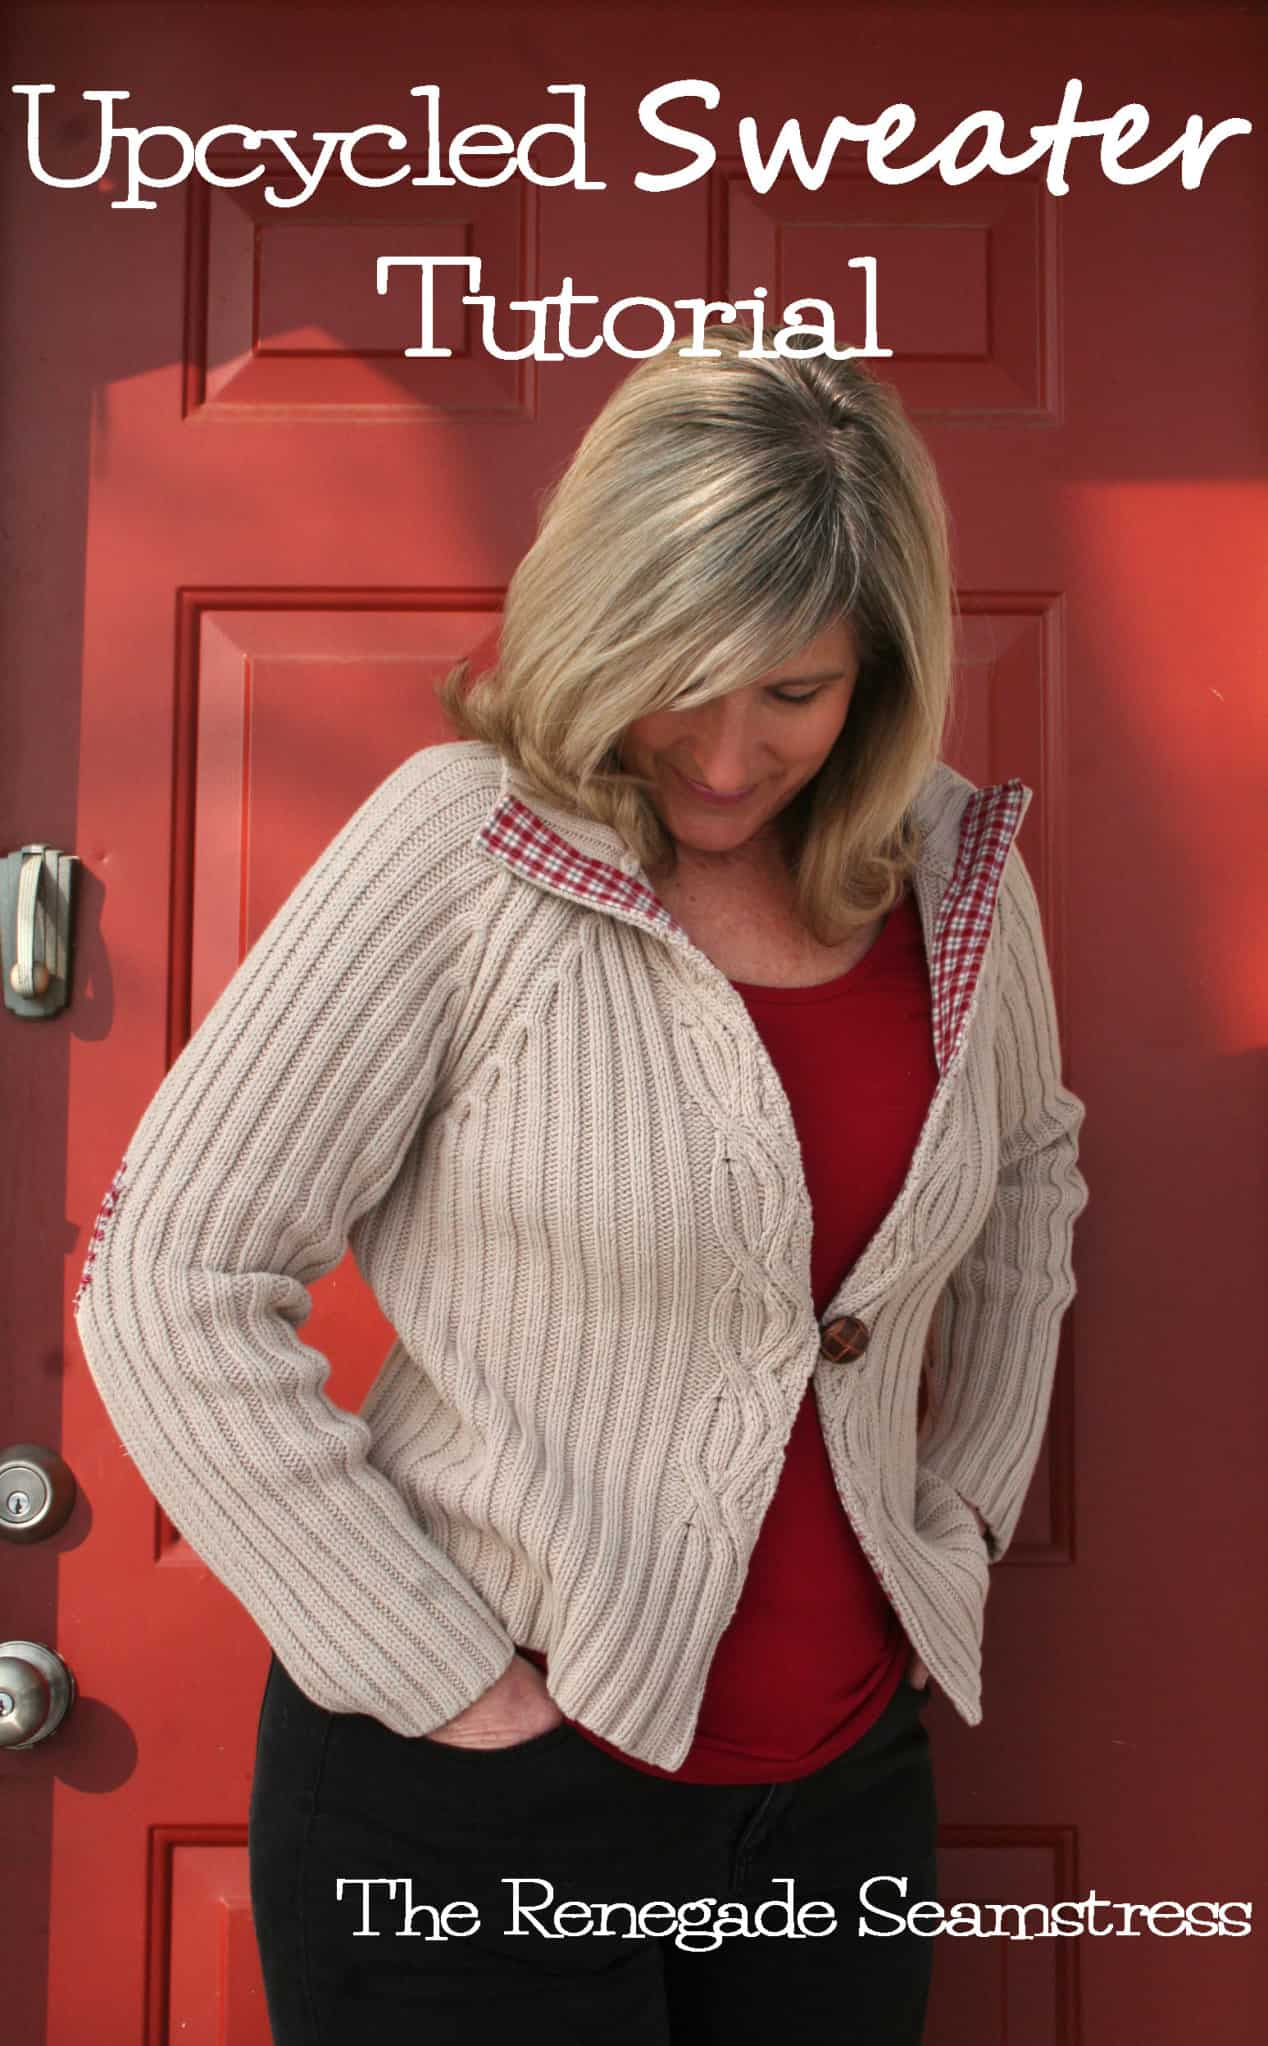 Large thrift shop sweater and old top to pretty classic cardigan